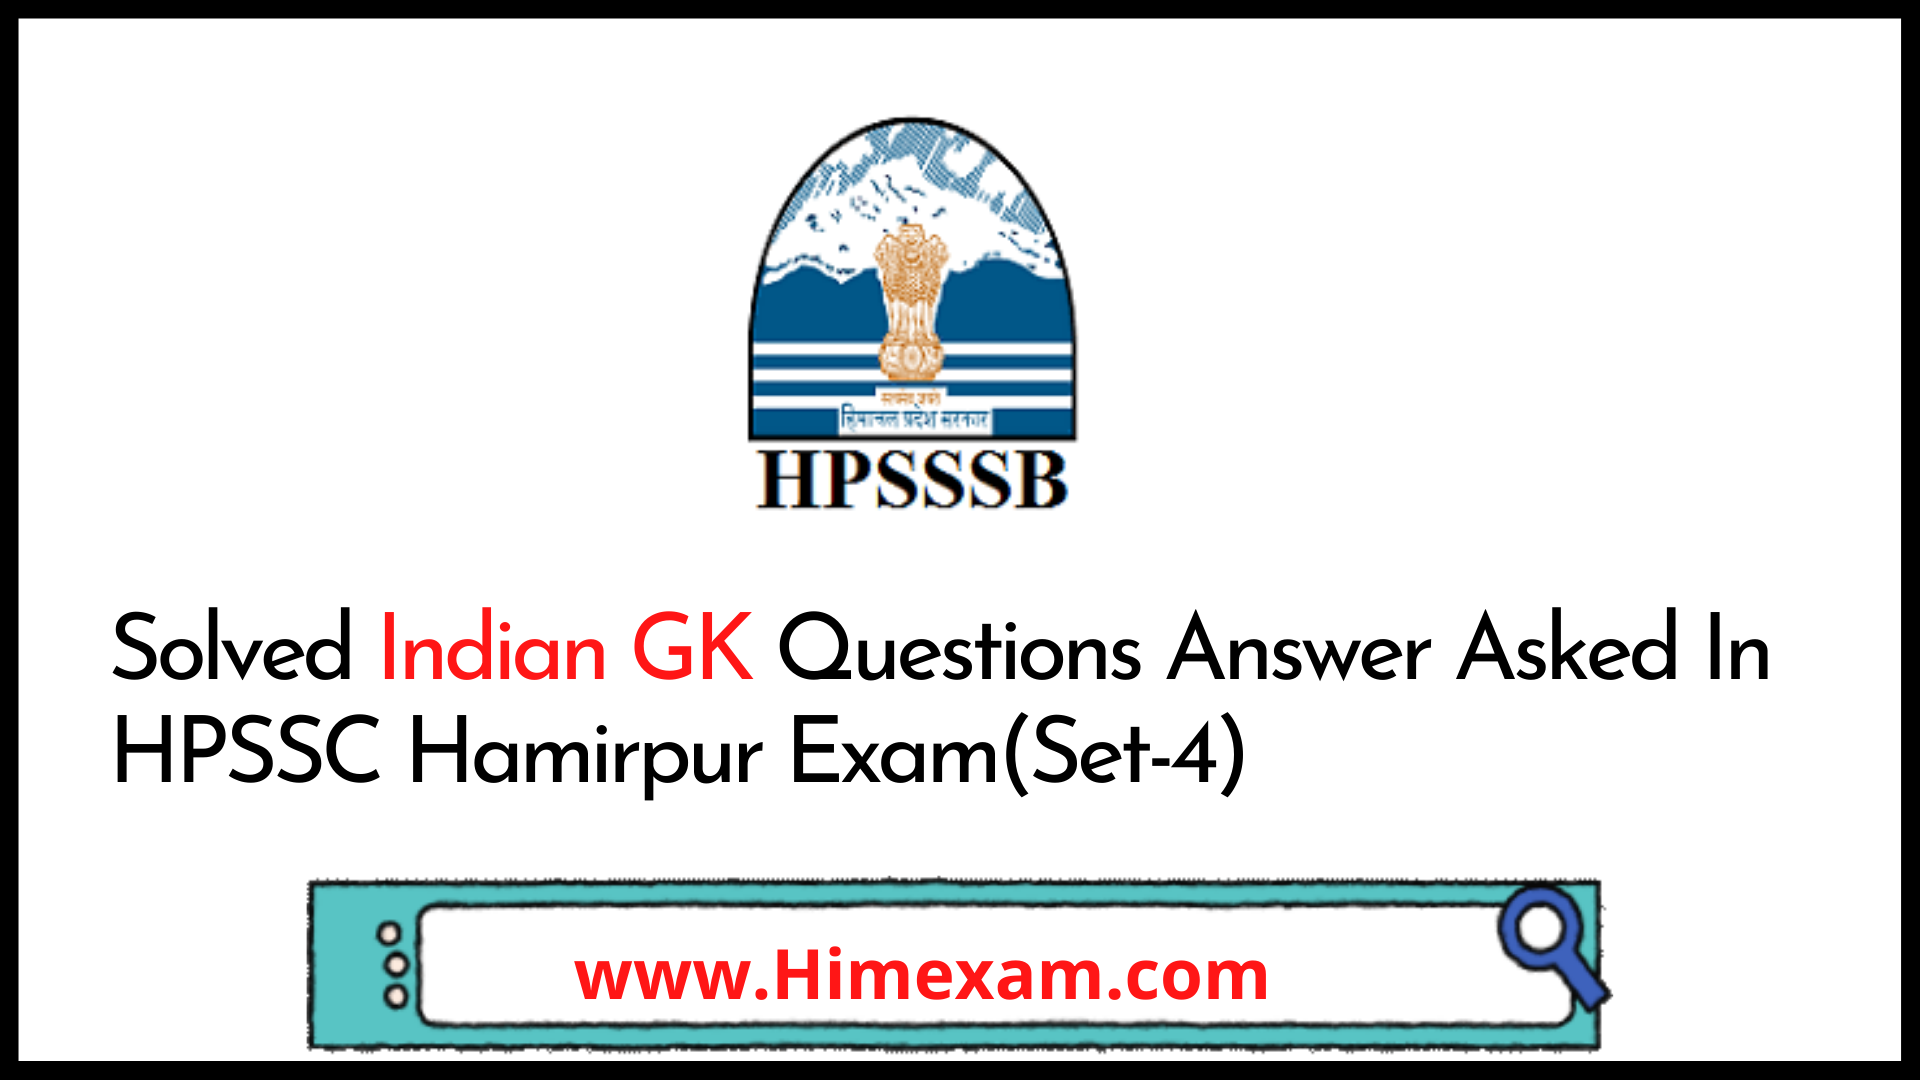 Solved Indian GK Questions Answer Asked In HPSSC Hamirpur Exam(Set-4)